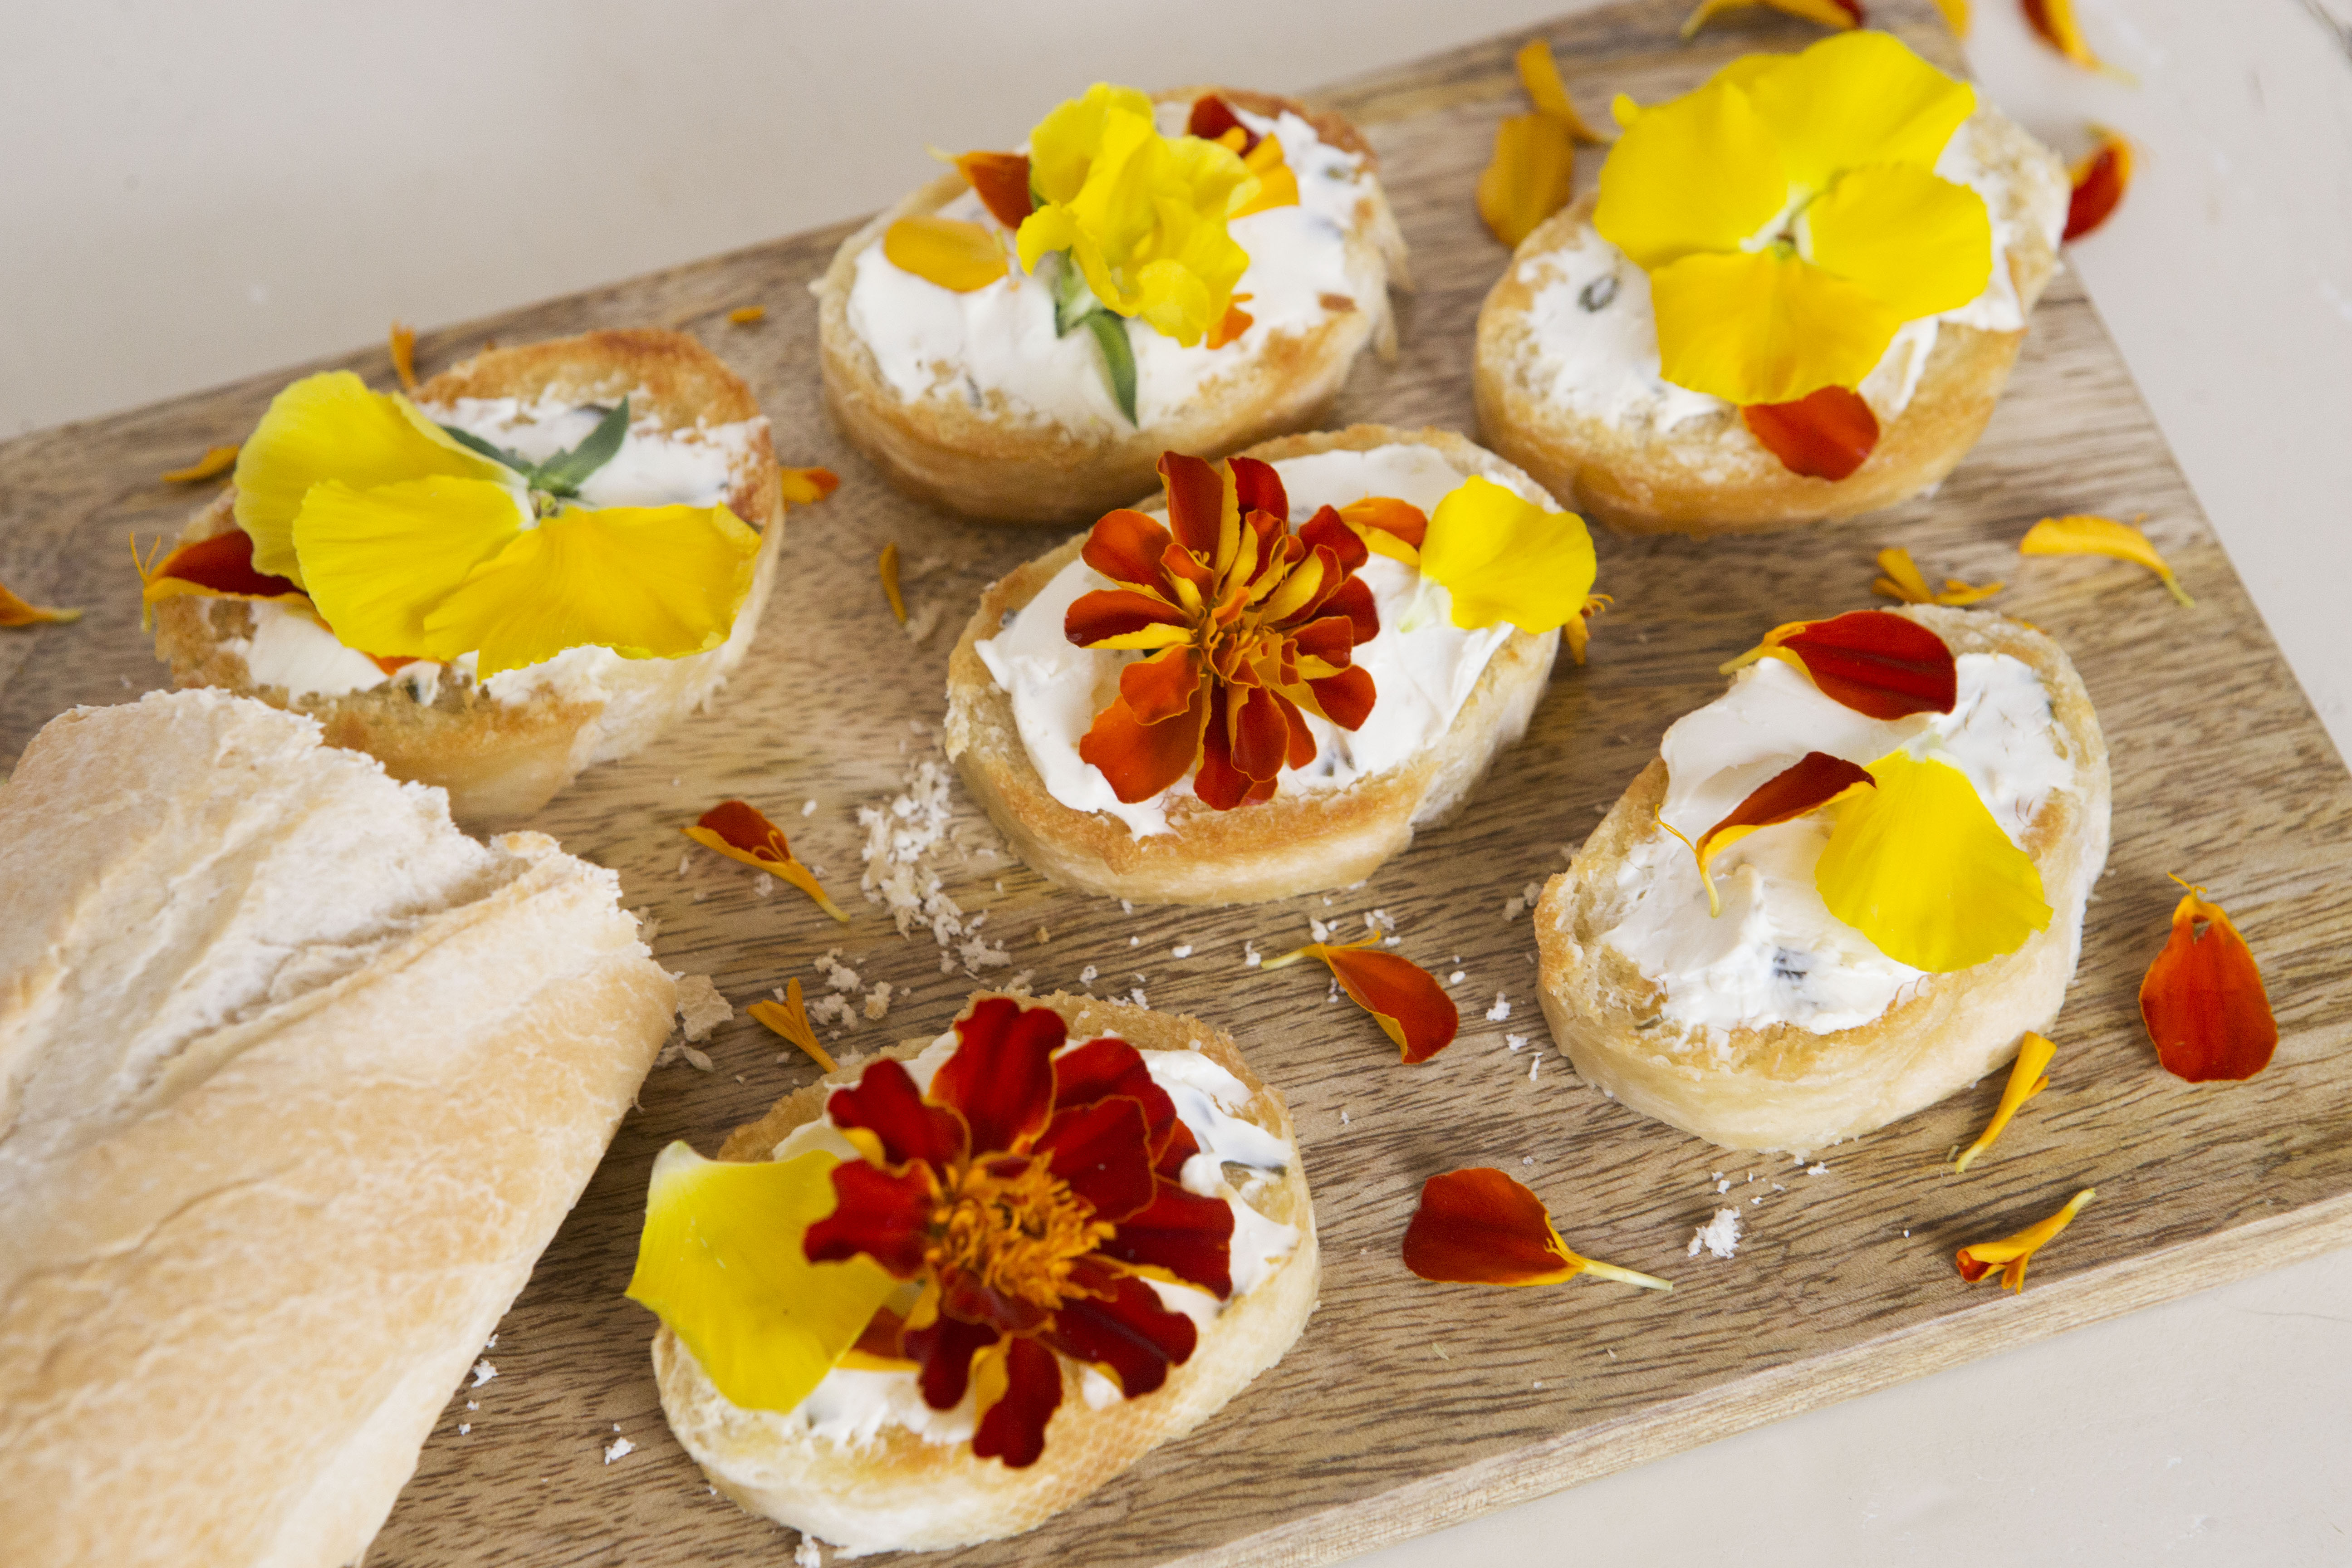 Cream Cheese and Chive Crostinis with Edible Flowers